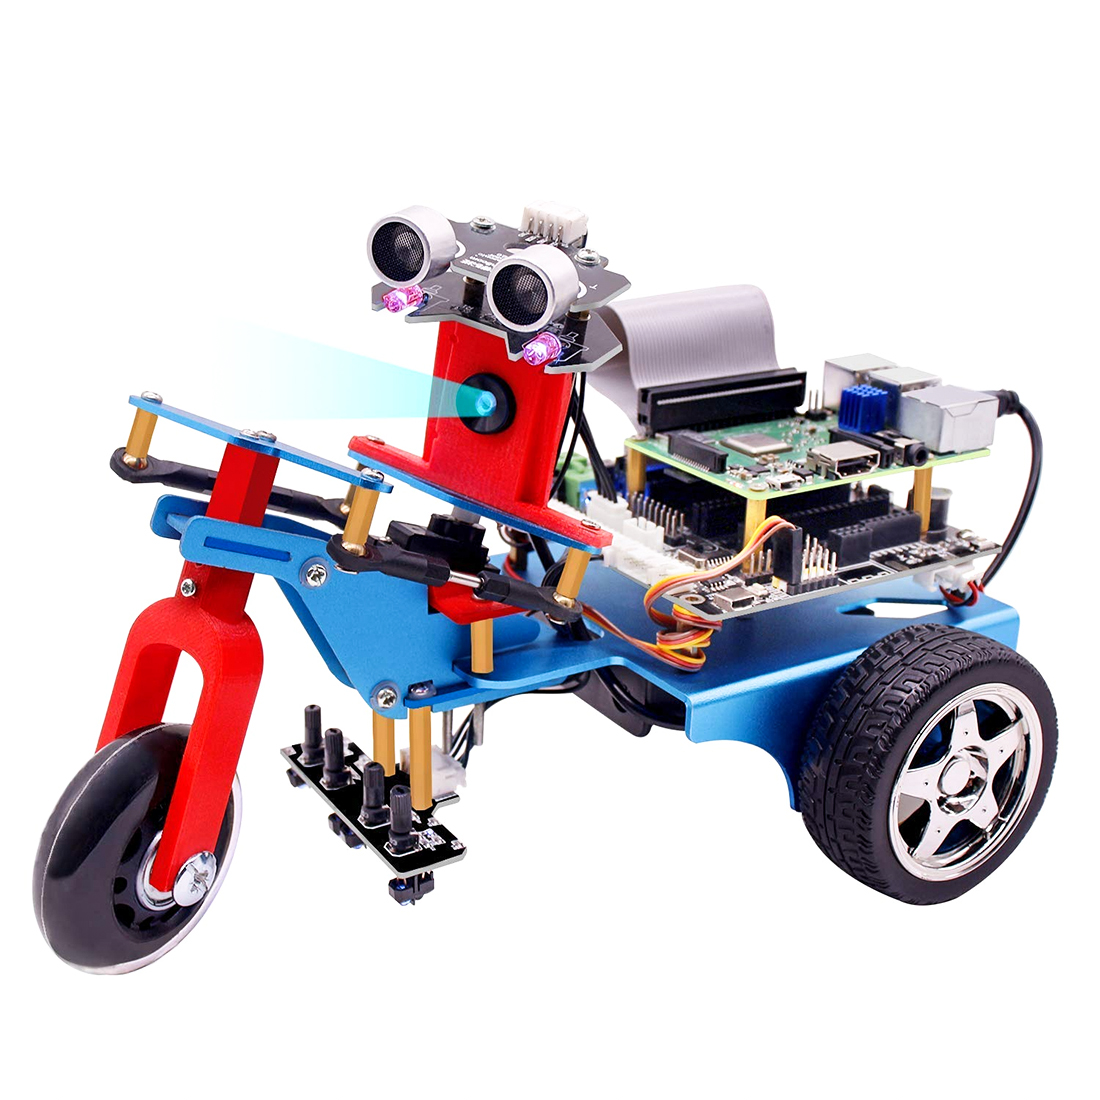 Active Trikebot Smart Robot Car Programmable Learning With Hd Camera Video Diy Robot With Detailed Electronic Tutorial For Kids Adults Diversified Latest Designs High Tech Toys Programmable Toys